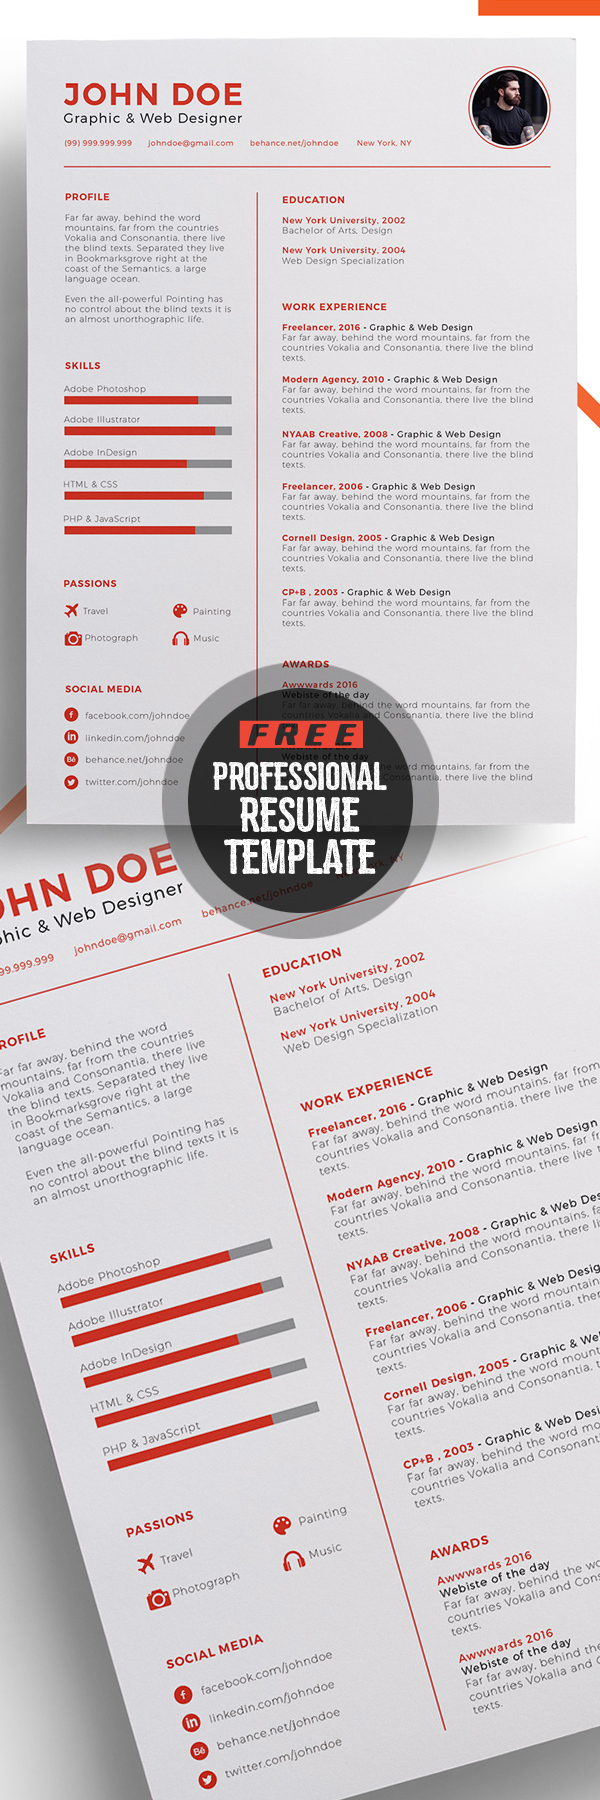 50 Free Resume Templates: Best Of 2018 -  50